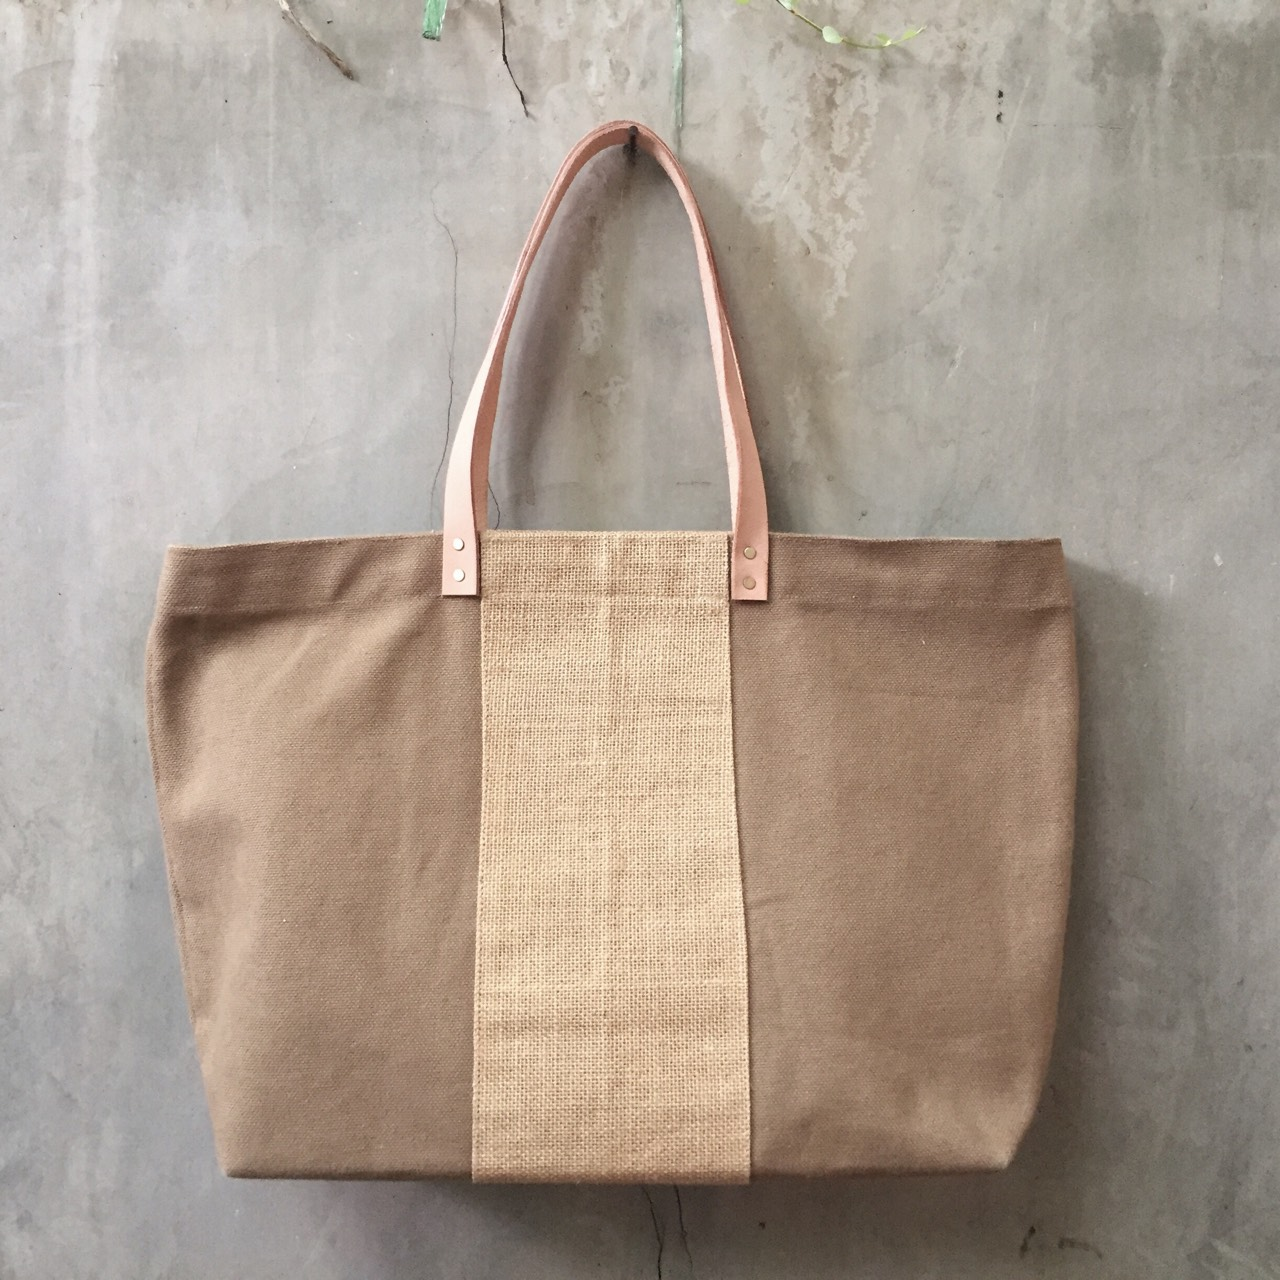 lapin,canvas,bag,Lapindesigns,leather,fashion,style,chicstyle,กระเป๋า,แคนวาส,madetoorder,minimal,hipster,LapinDesigns